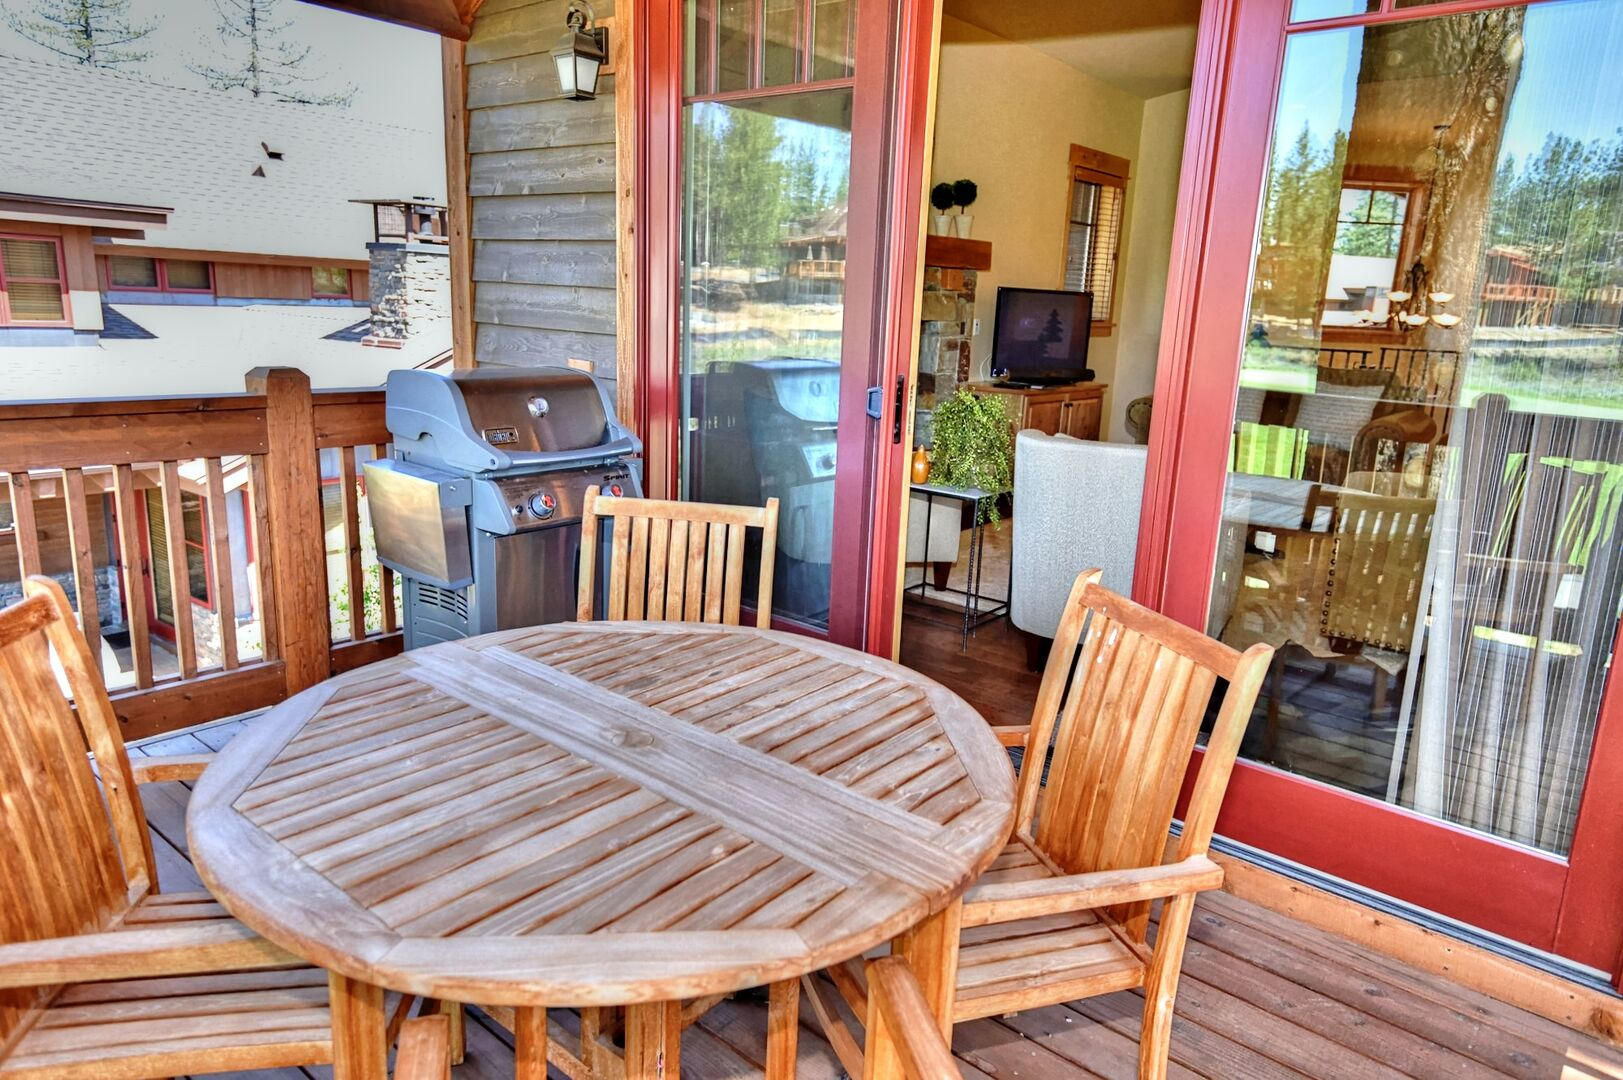 Enjoy Outdoor Seating on Patio of Vacation Rental in Truckee CA.